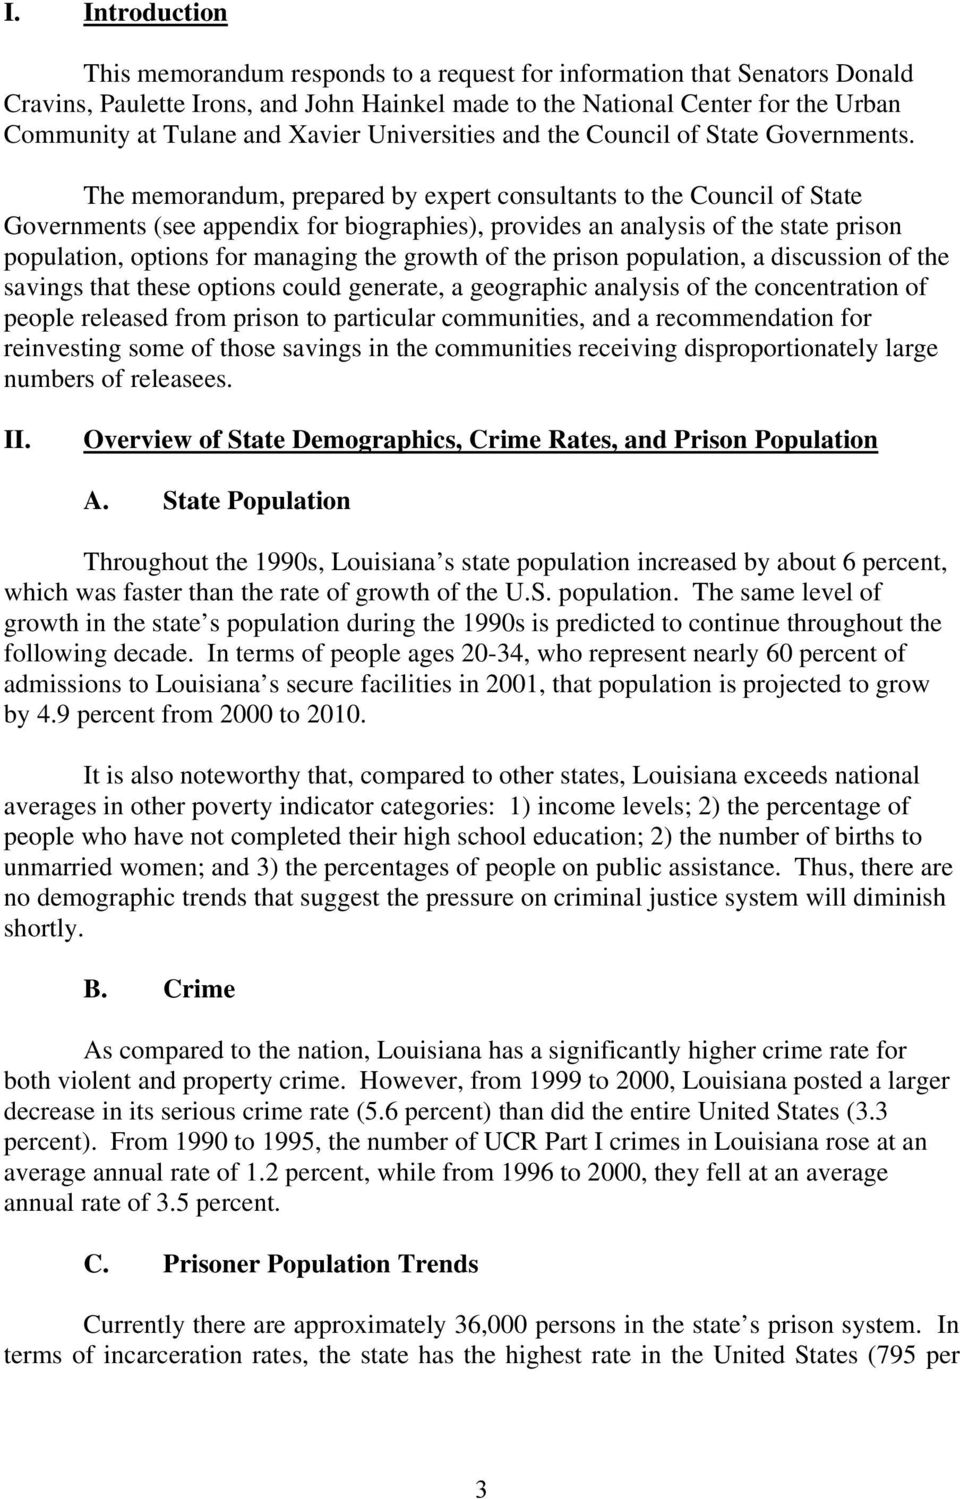 The memorandum, prepared by expert consultants to the Council of State Governments (see appendix for biographies), provides an analysis of the state prison population, options for managing the growth